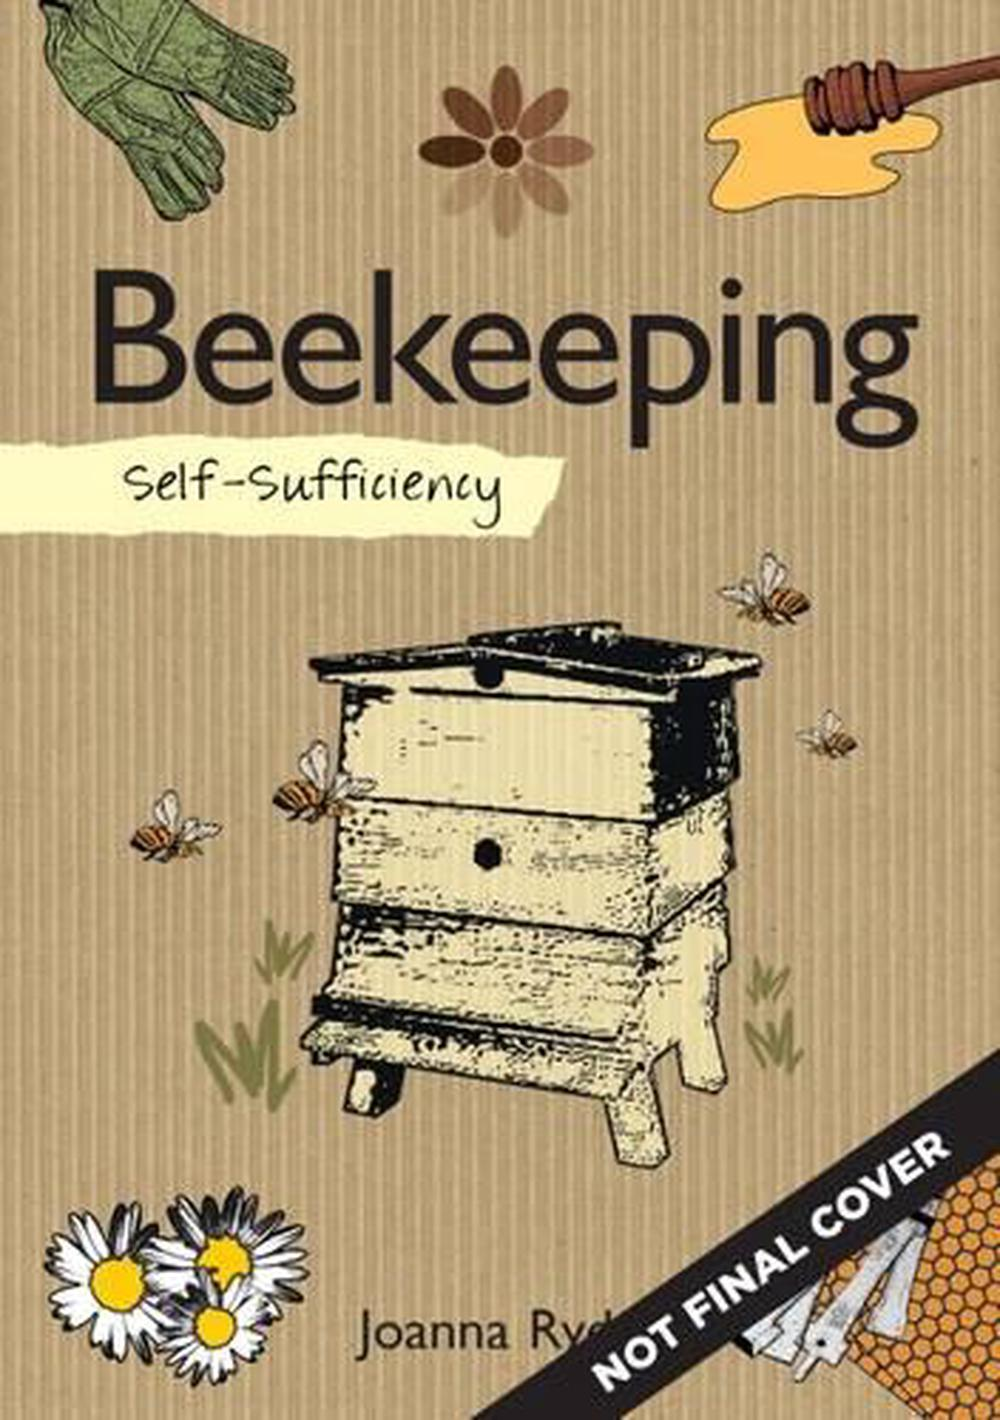 Self-sufficiency: Beekeeping